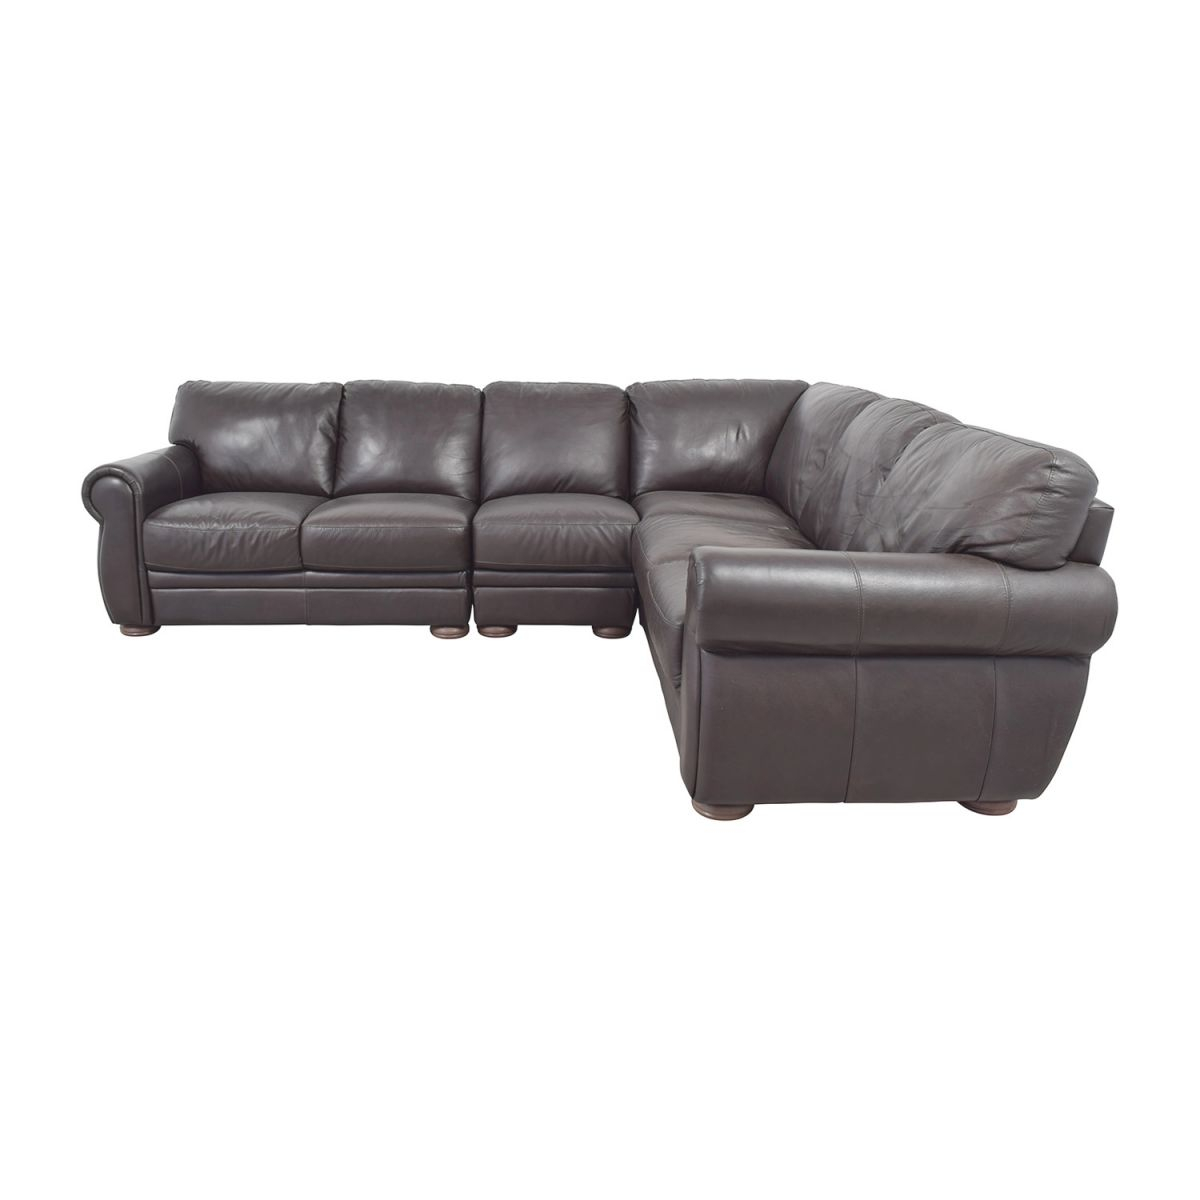 70% Off – Raymour & Flanigan Raymour & Flanigan Marsala Brown Leather L-Shaped Sectional / Sofas in Lovely Raymour And Flanigan Sectional Sofas